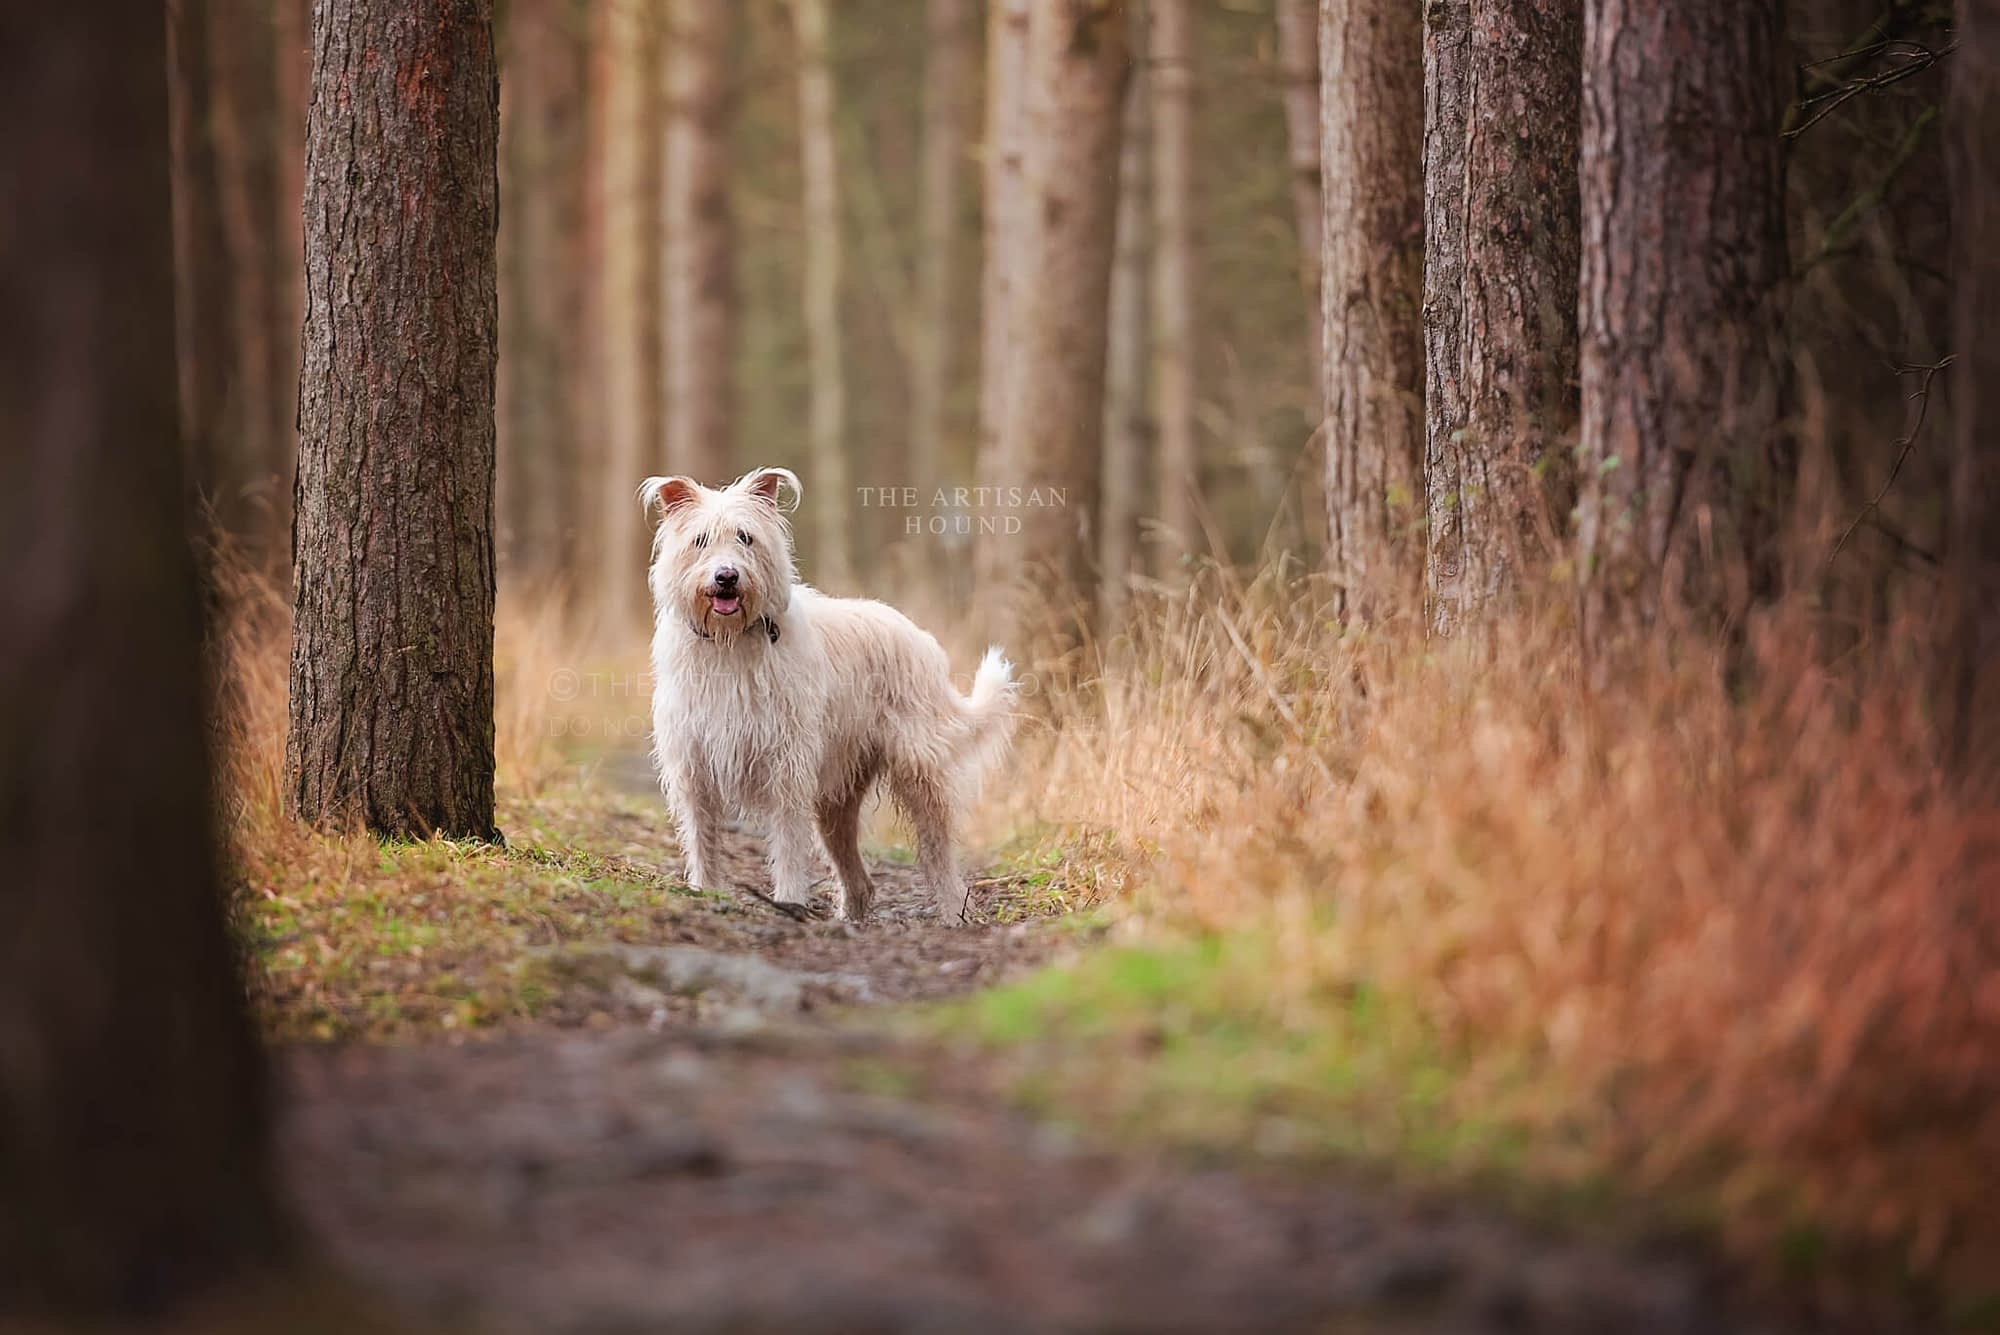 Scruffy dog standing among trees in Little Irchester Country Park